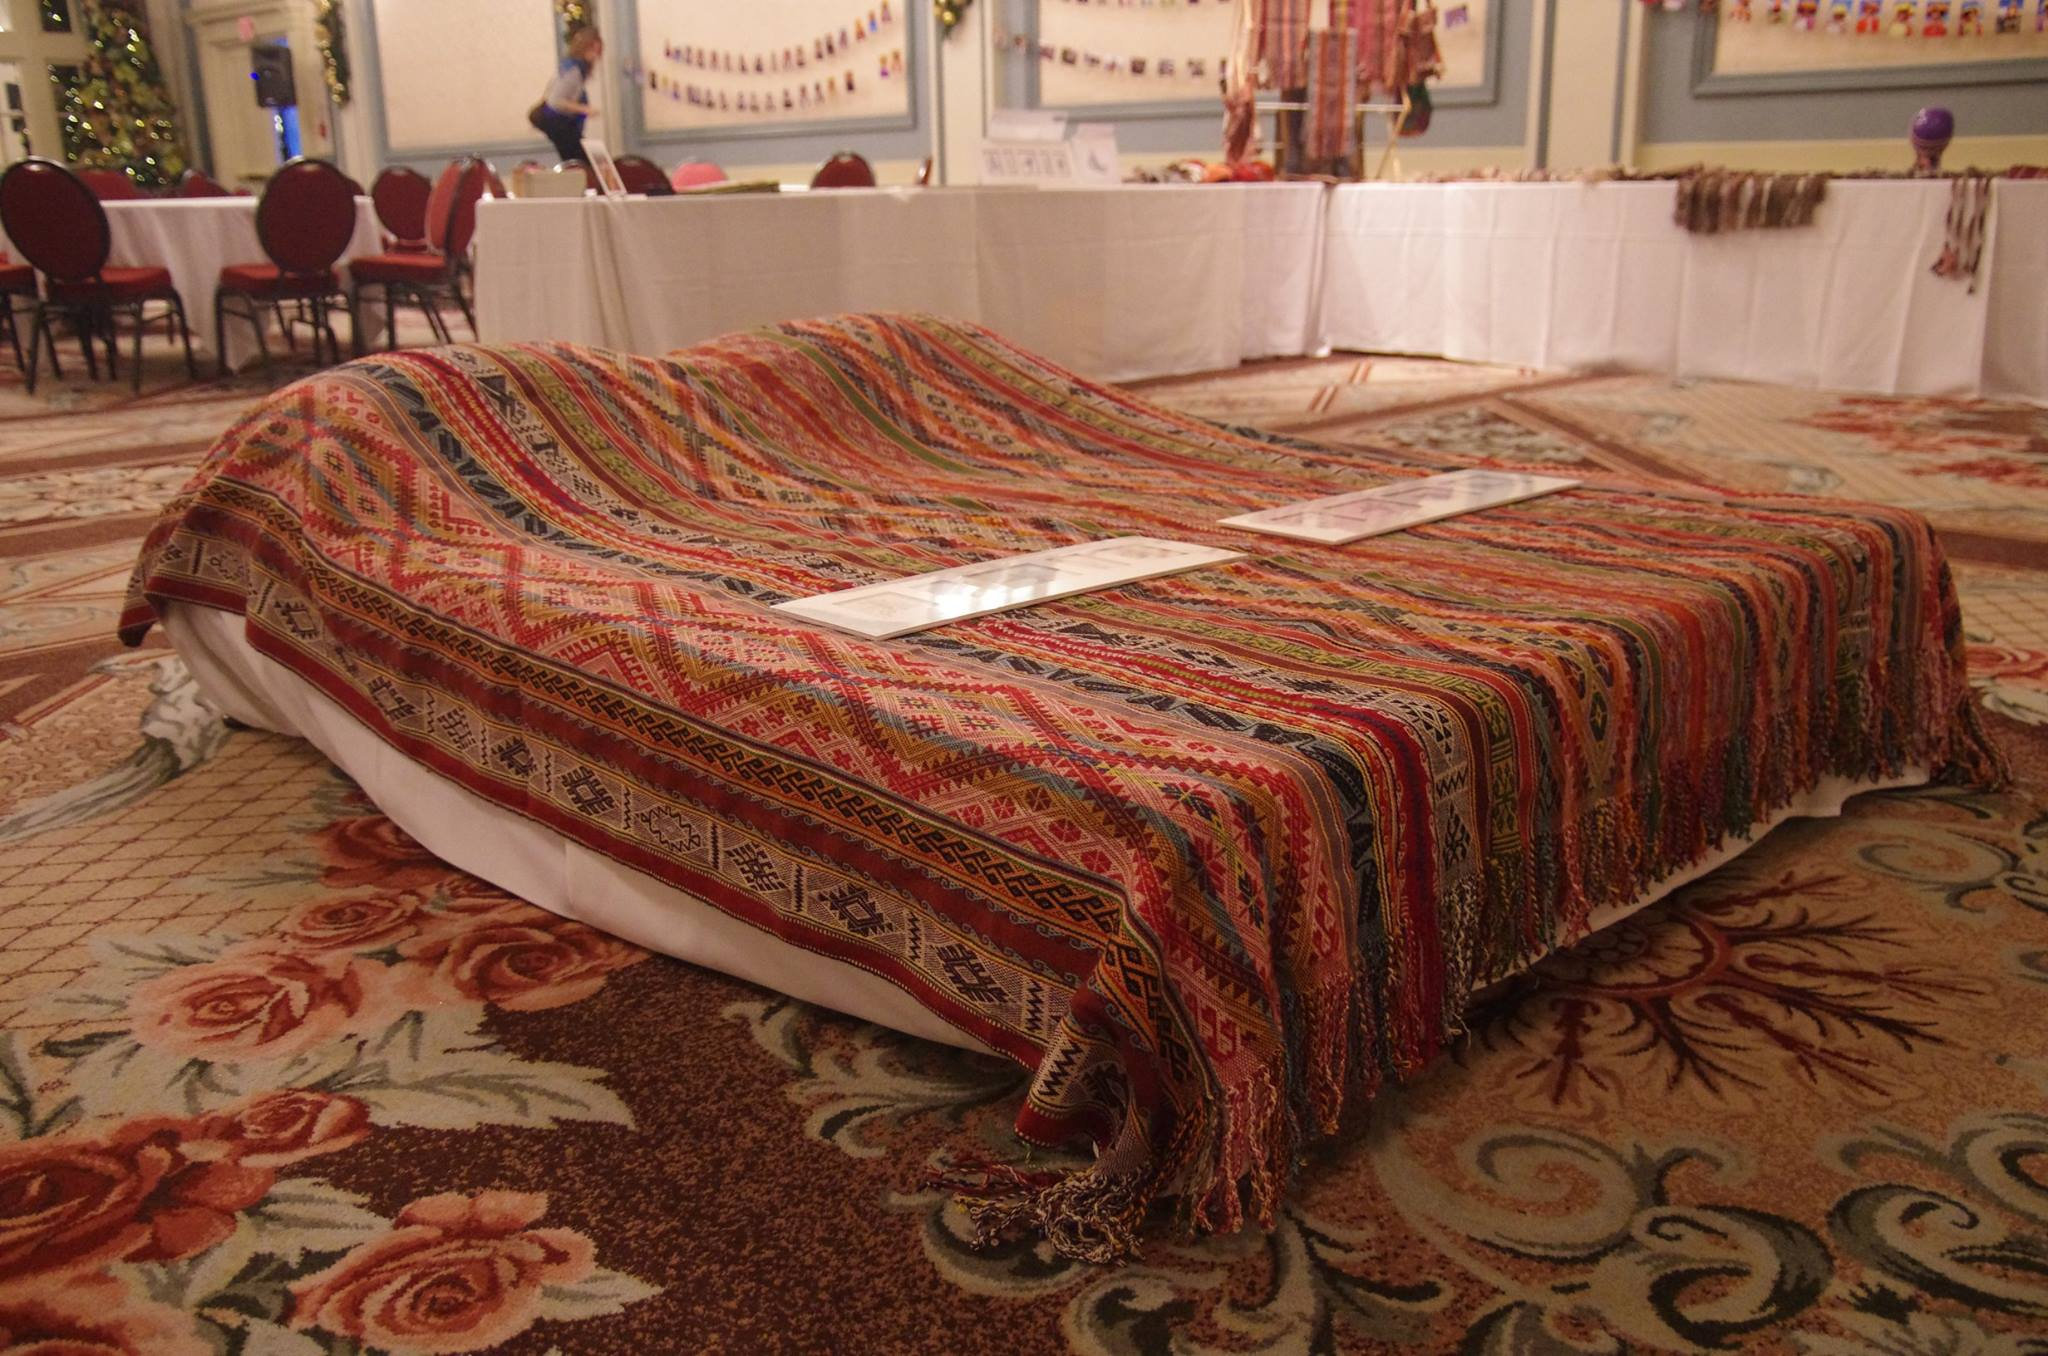 Textile bedspread on display